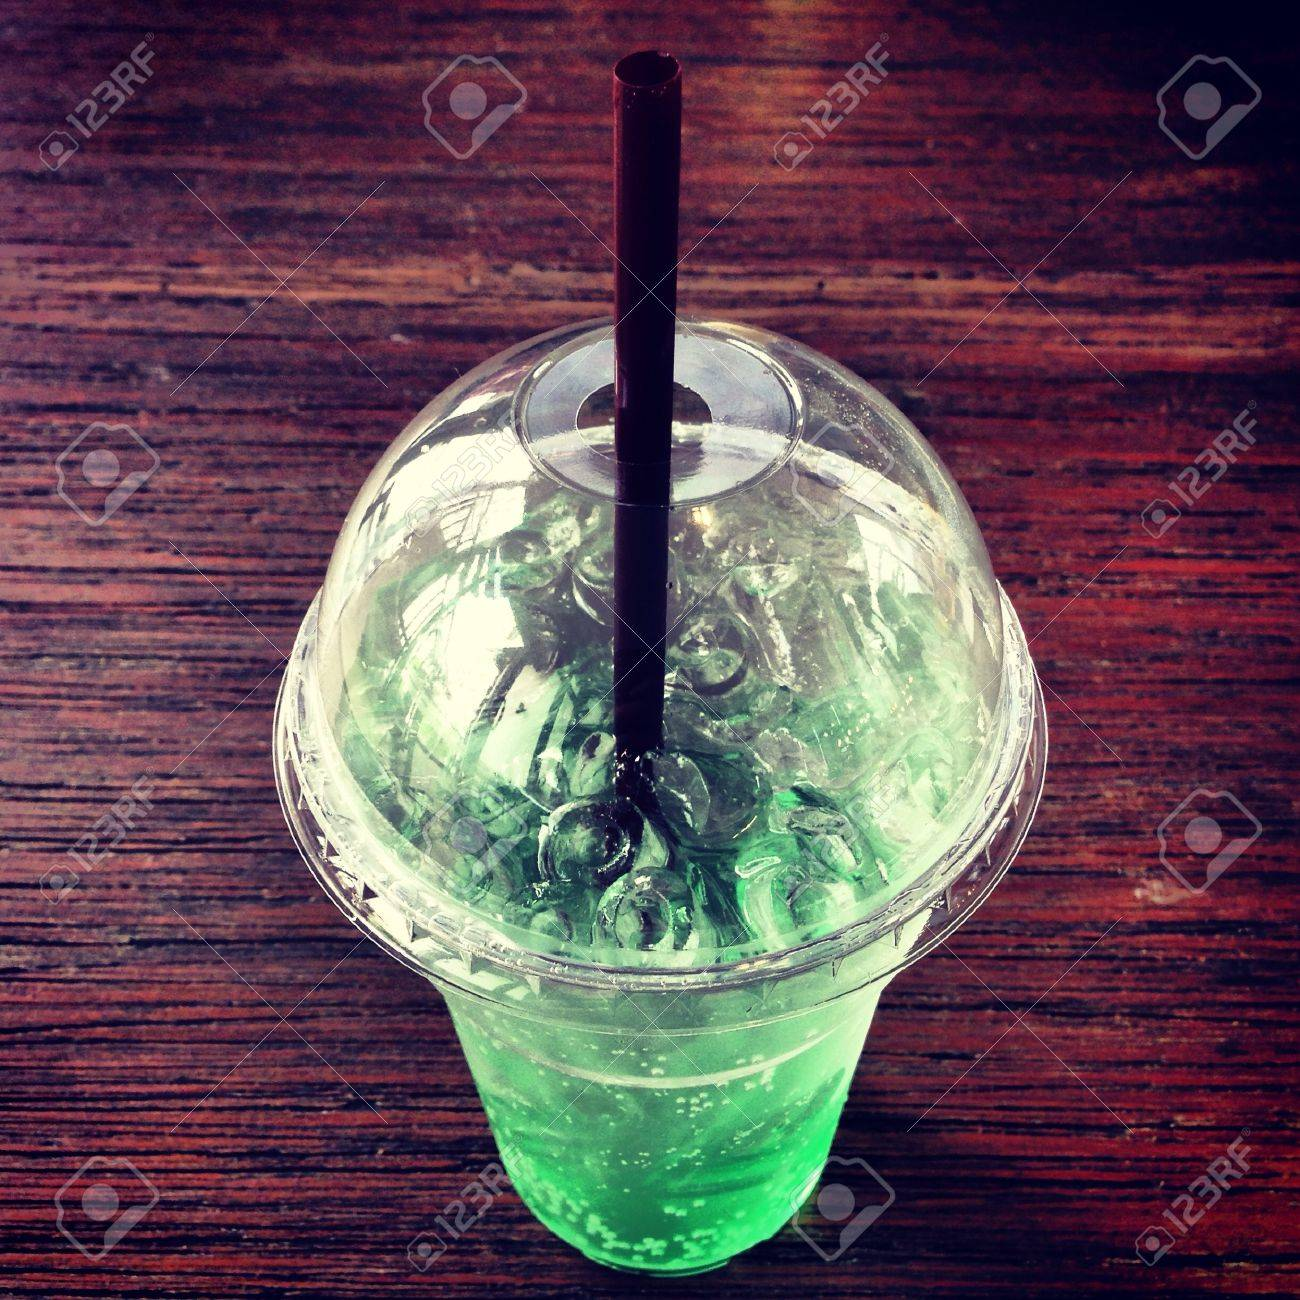 A glass of cold apple soda on the wooden table - 21480939